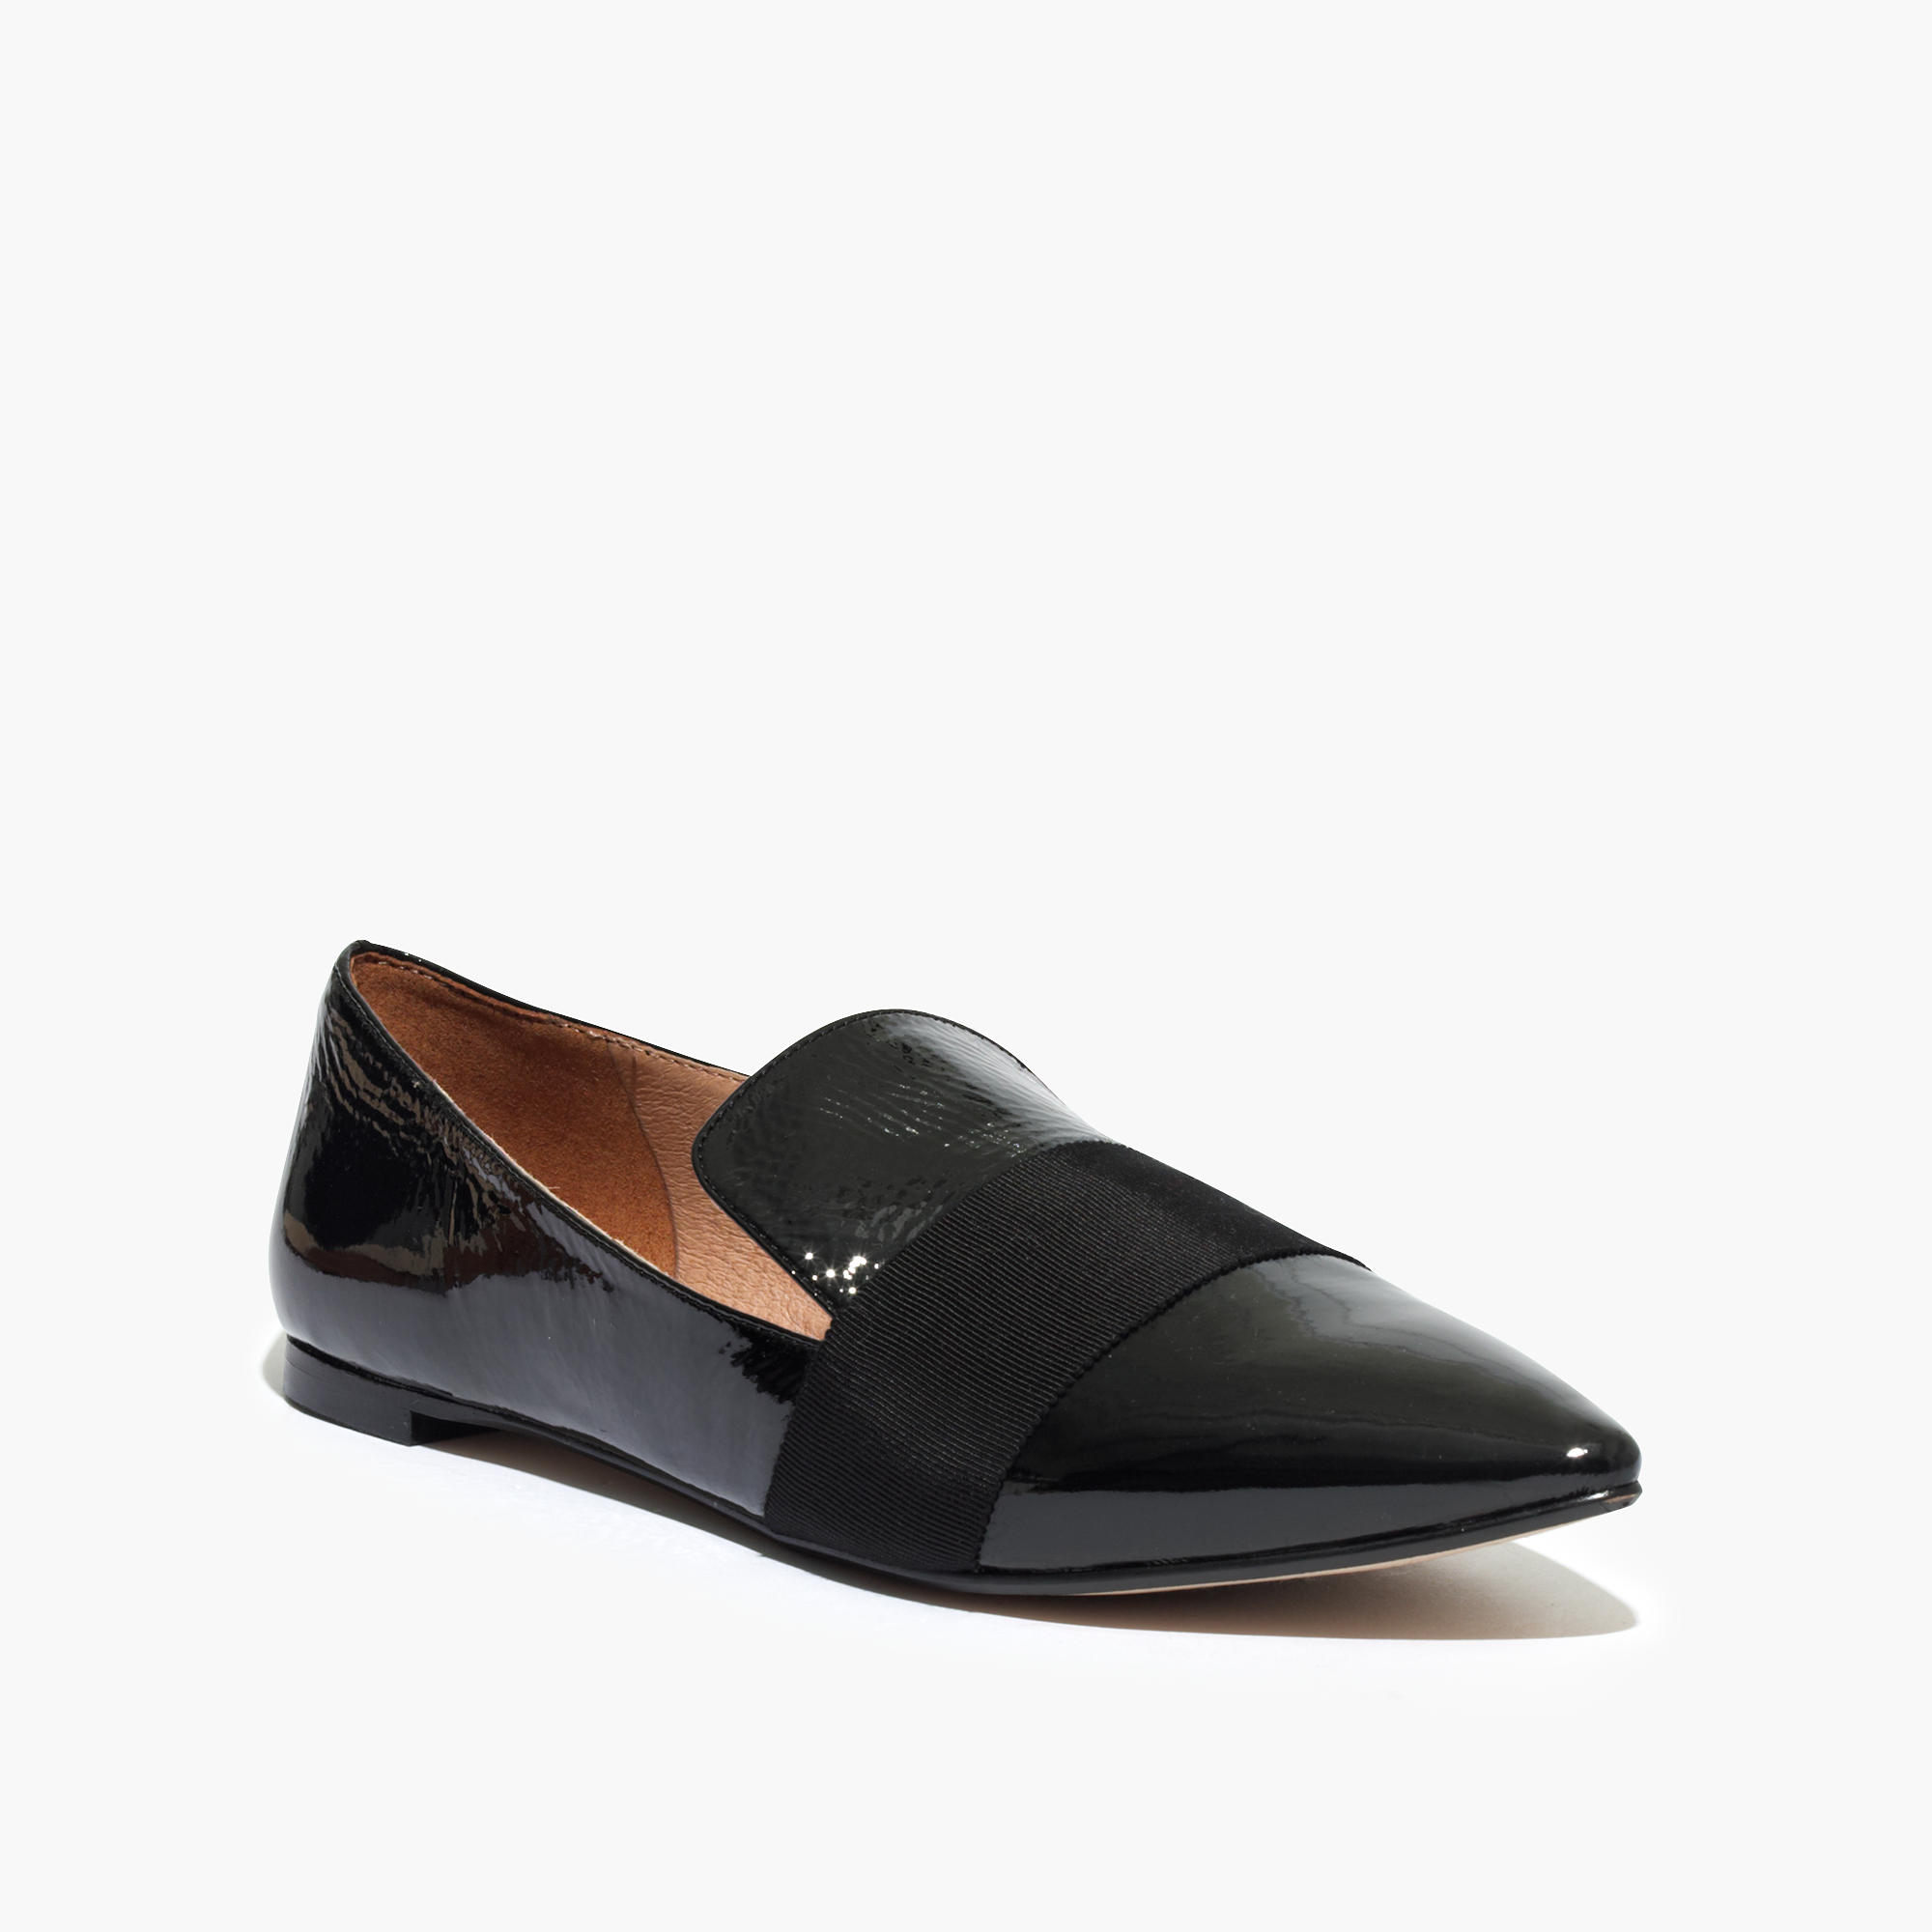 Madewell  Loafer , $128